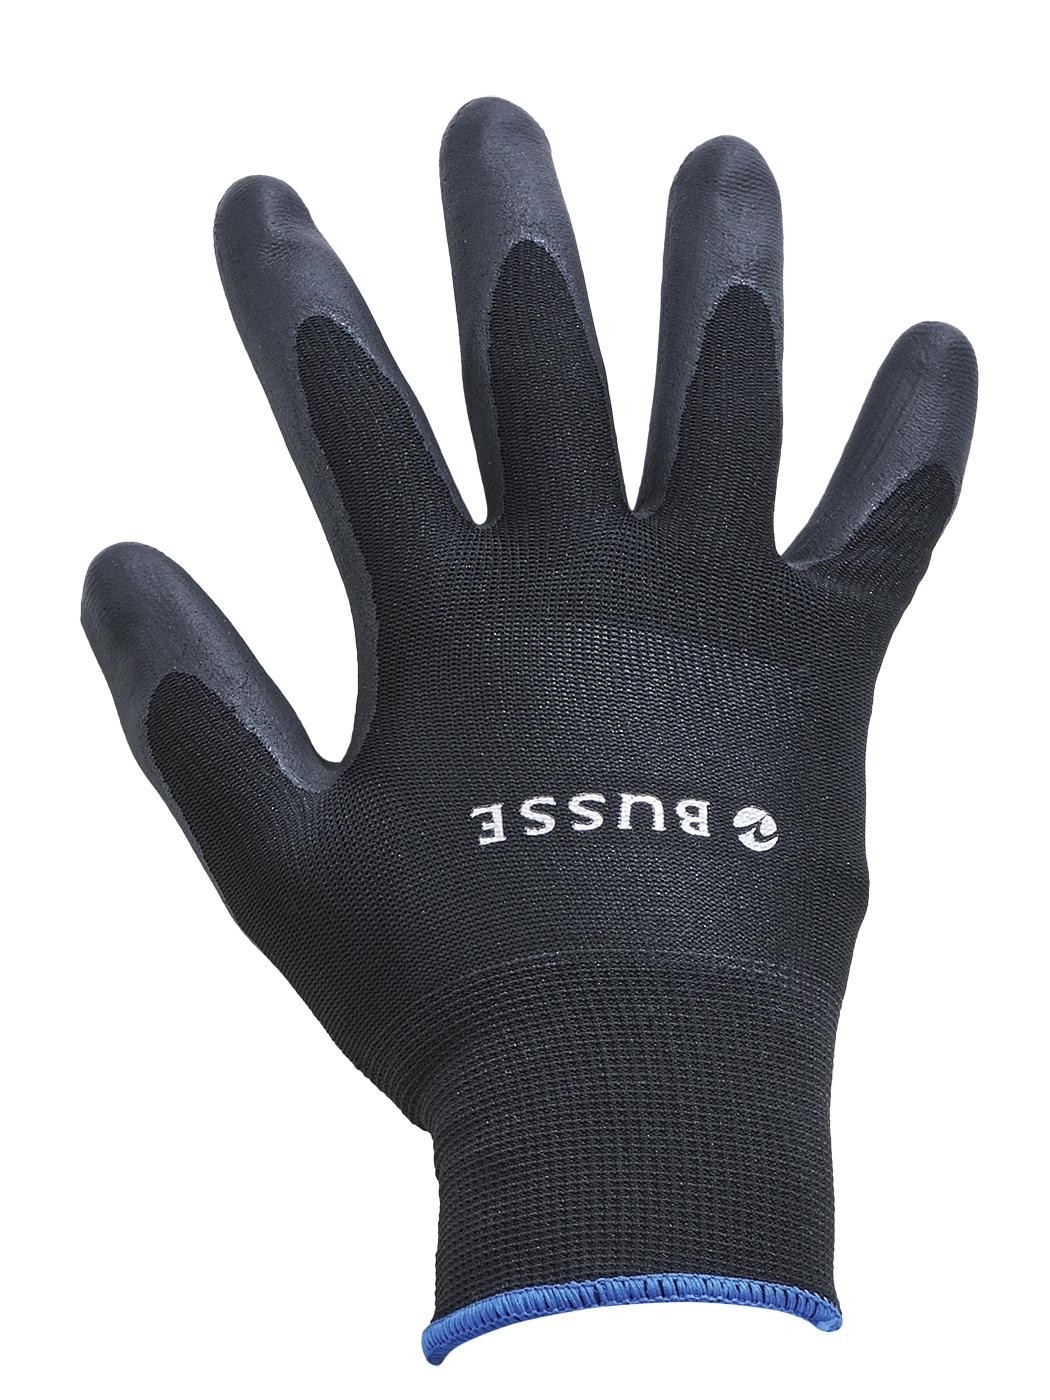 Busse Allround Winter Gloves  - Thomas Irving's equestrian and accessories store  Busse Allround Winter Gloves